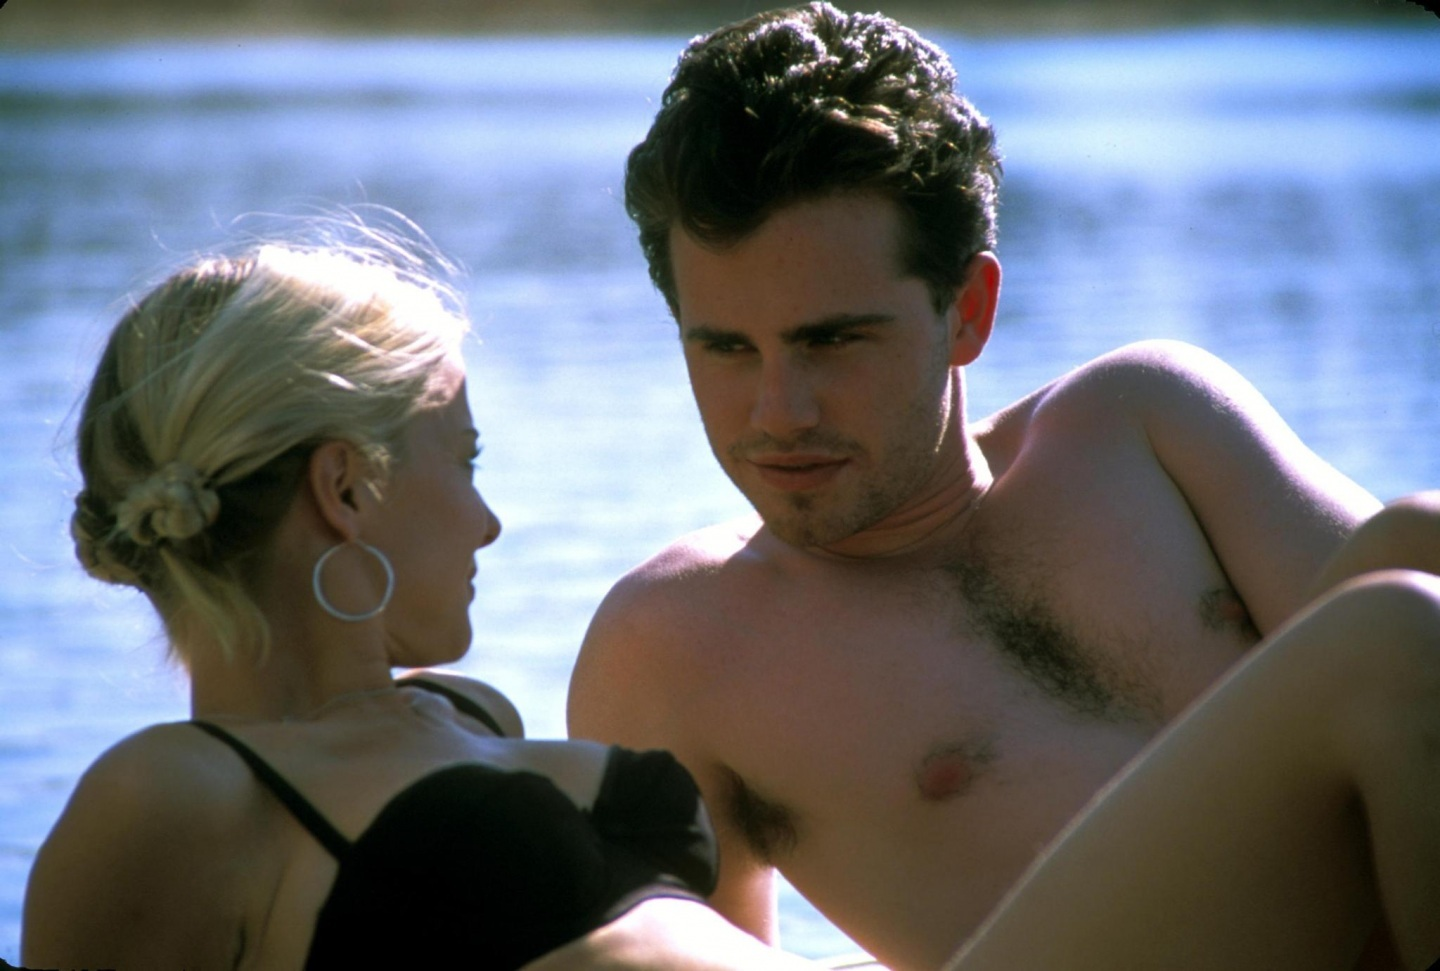 still-of-jordan-ladd-and-rider-strong-in-cabin-fever-large-picture-movies-4aa5f9cc4f8f0cf5b09da82f9766192d-large-166763.jpg